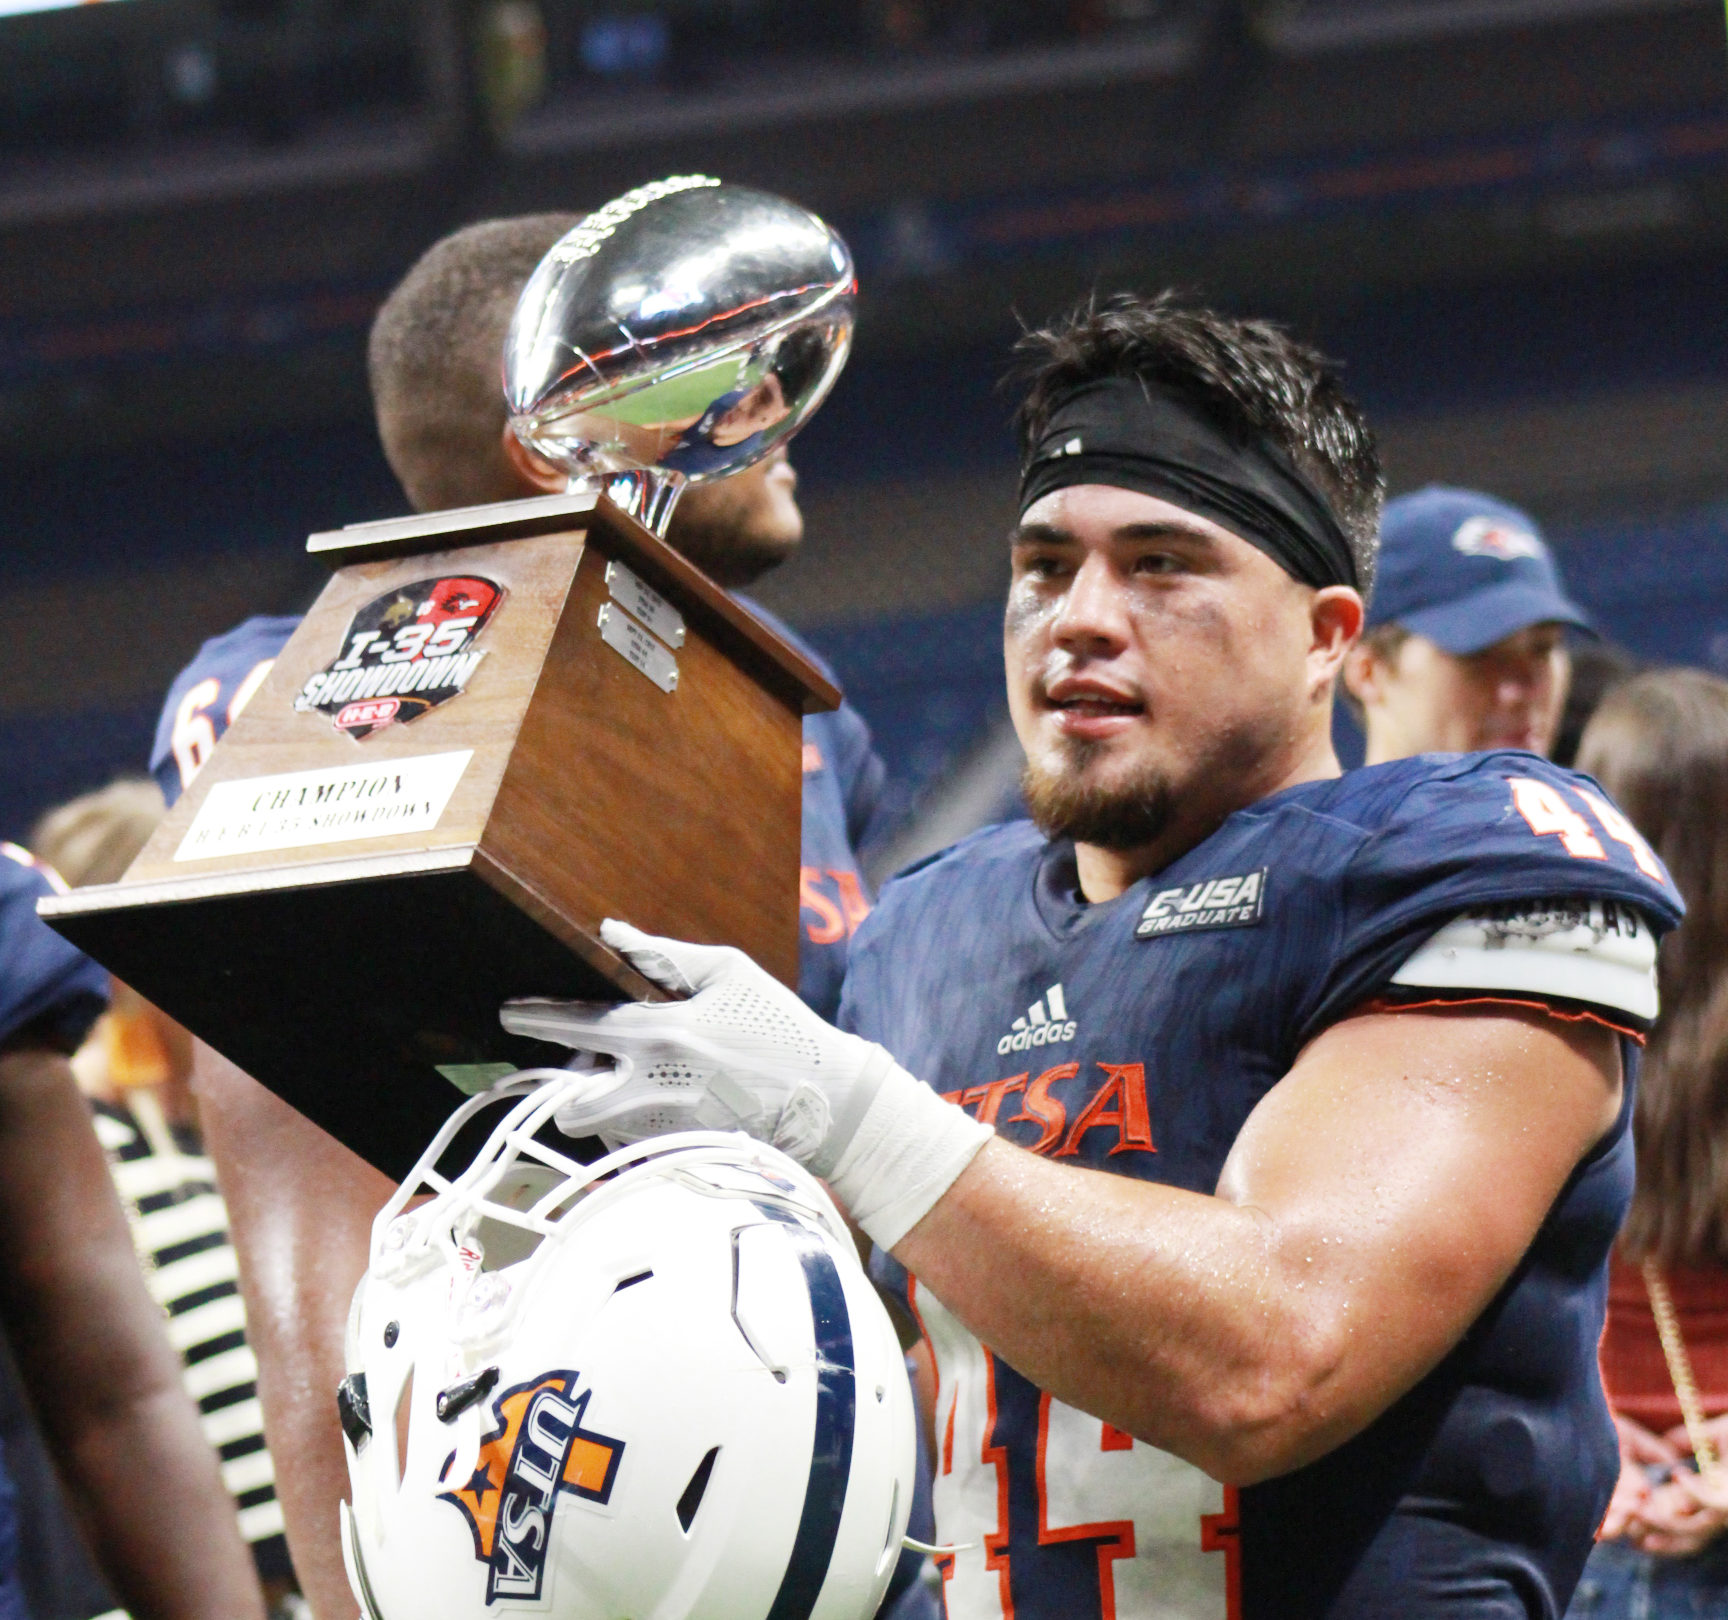 Les Maruo holding the I-35 Showdown Trophy after Saturday's win.